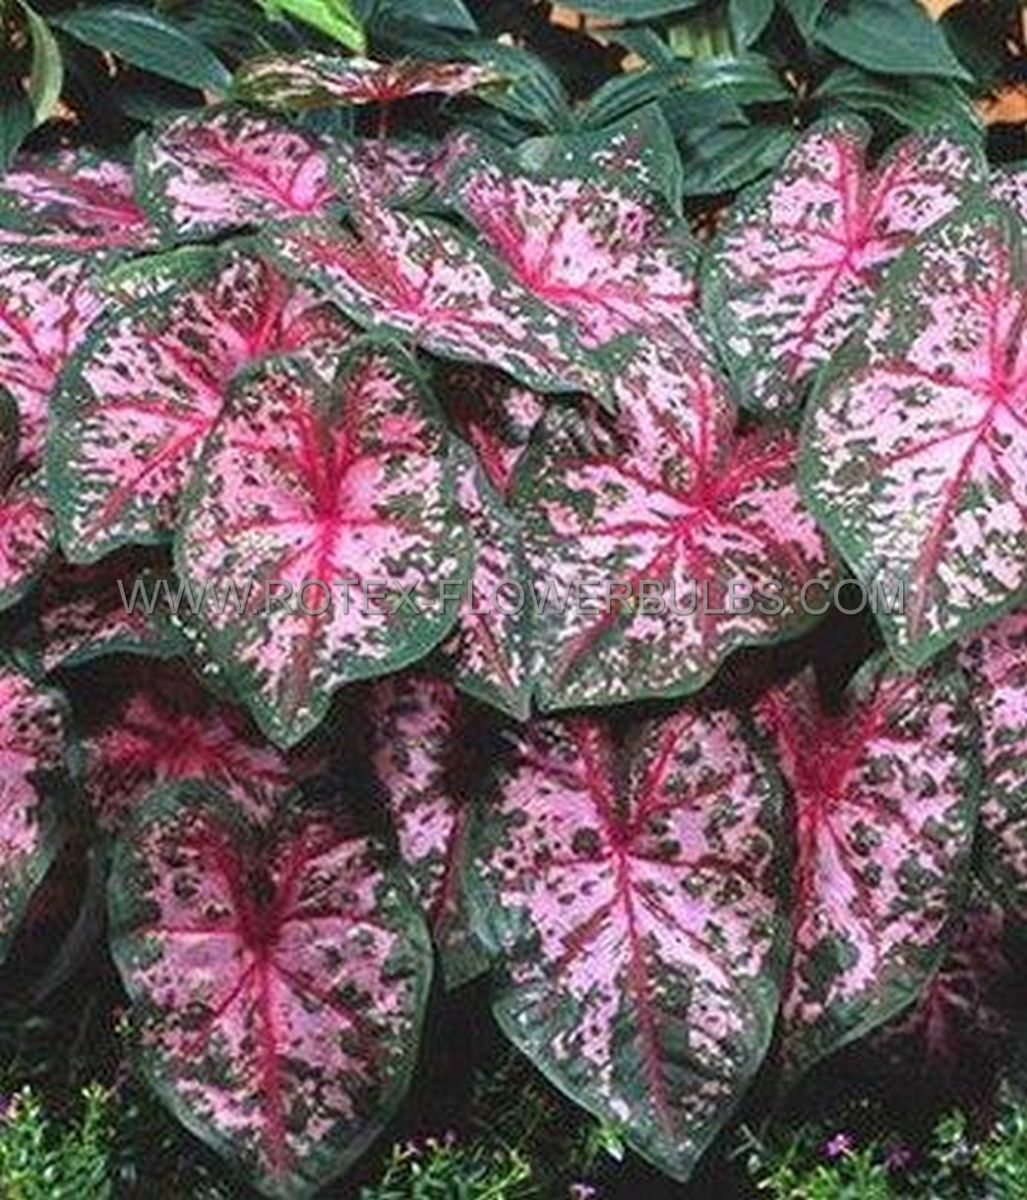 caladium fancy leaved carolyn whorton jumbo 100 pcarton